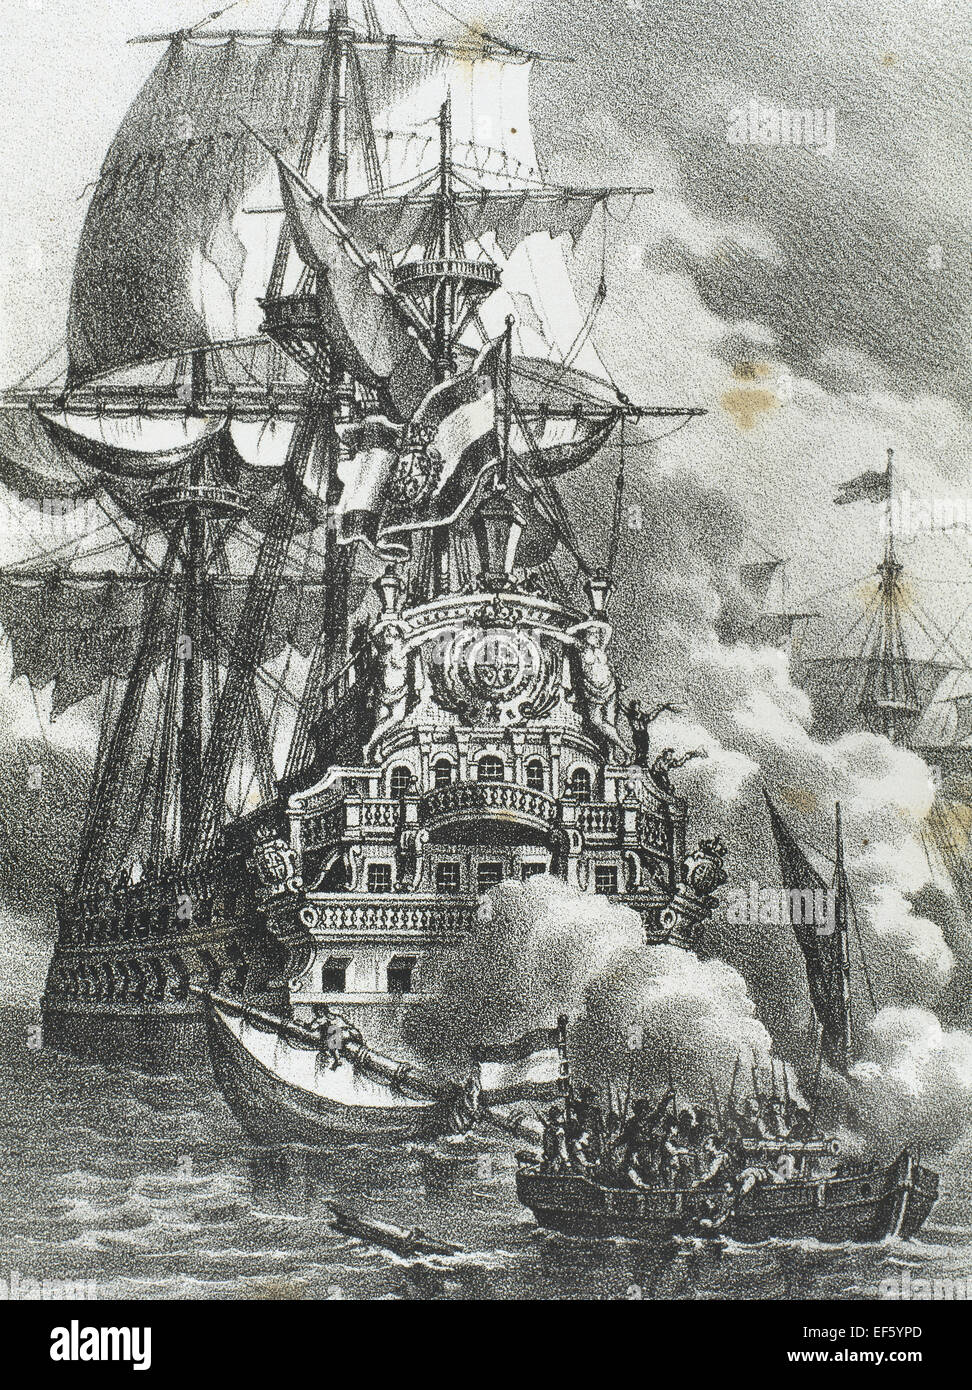 The Brethren or Brethren of the Coast attacking three Spanish galleons. They were a coalition of pirates and privateers - Stock Image